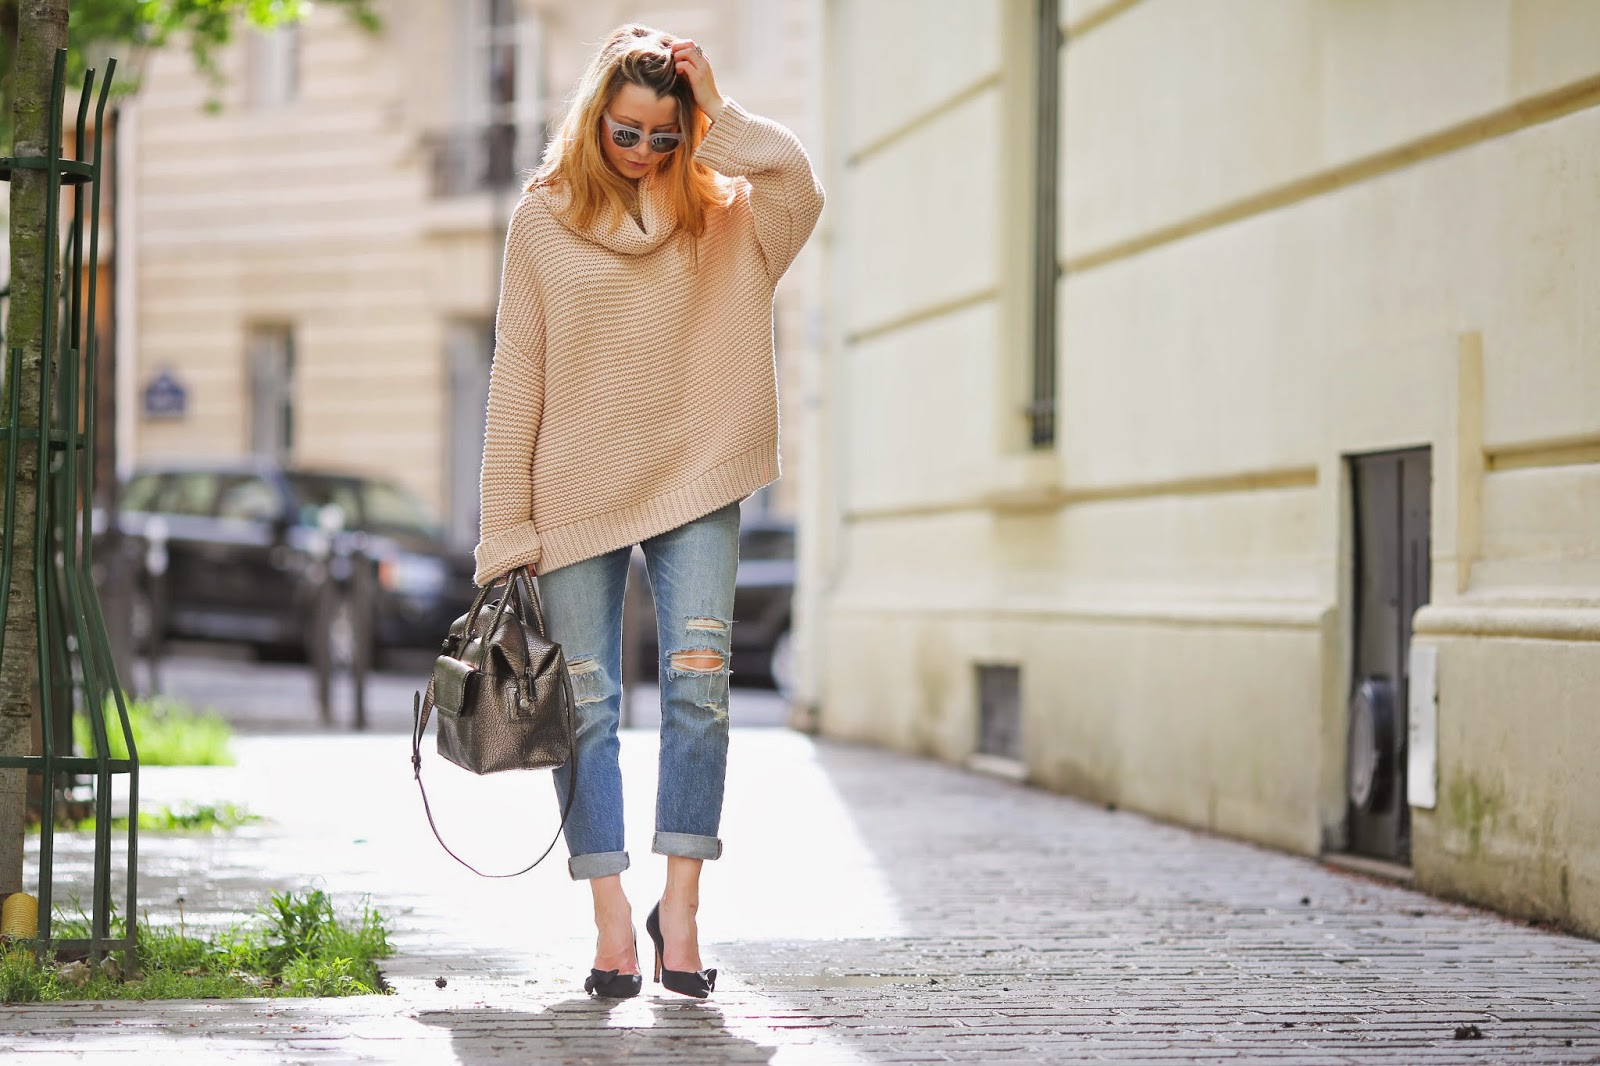 zara, levi's, I woke up like this, Instagram, baraboux, isabel marant, casual, paris, streetstyle